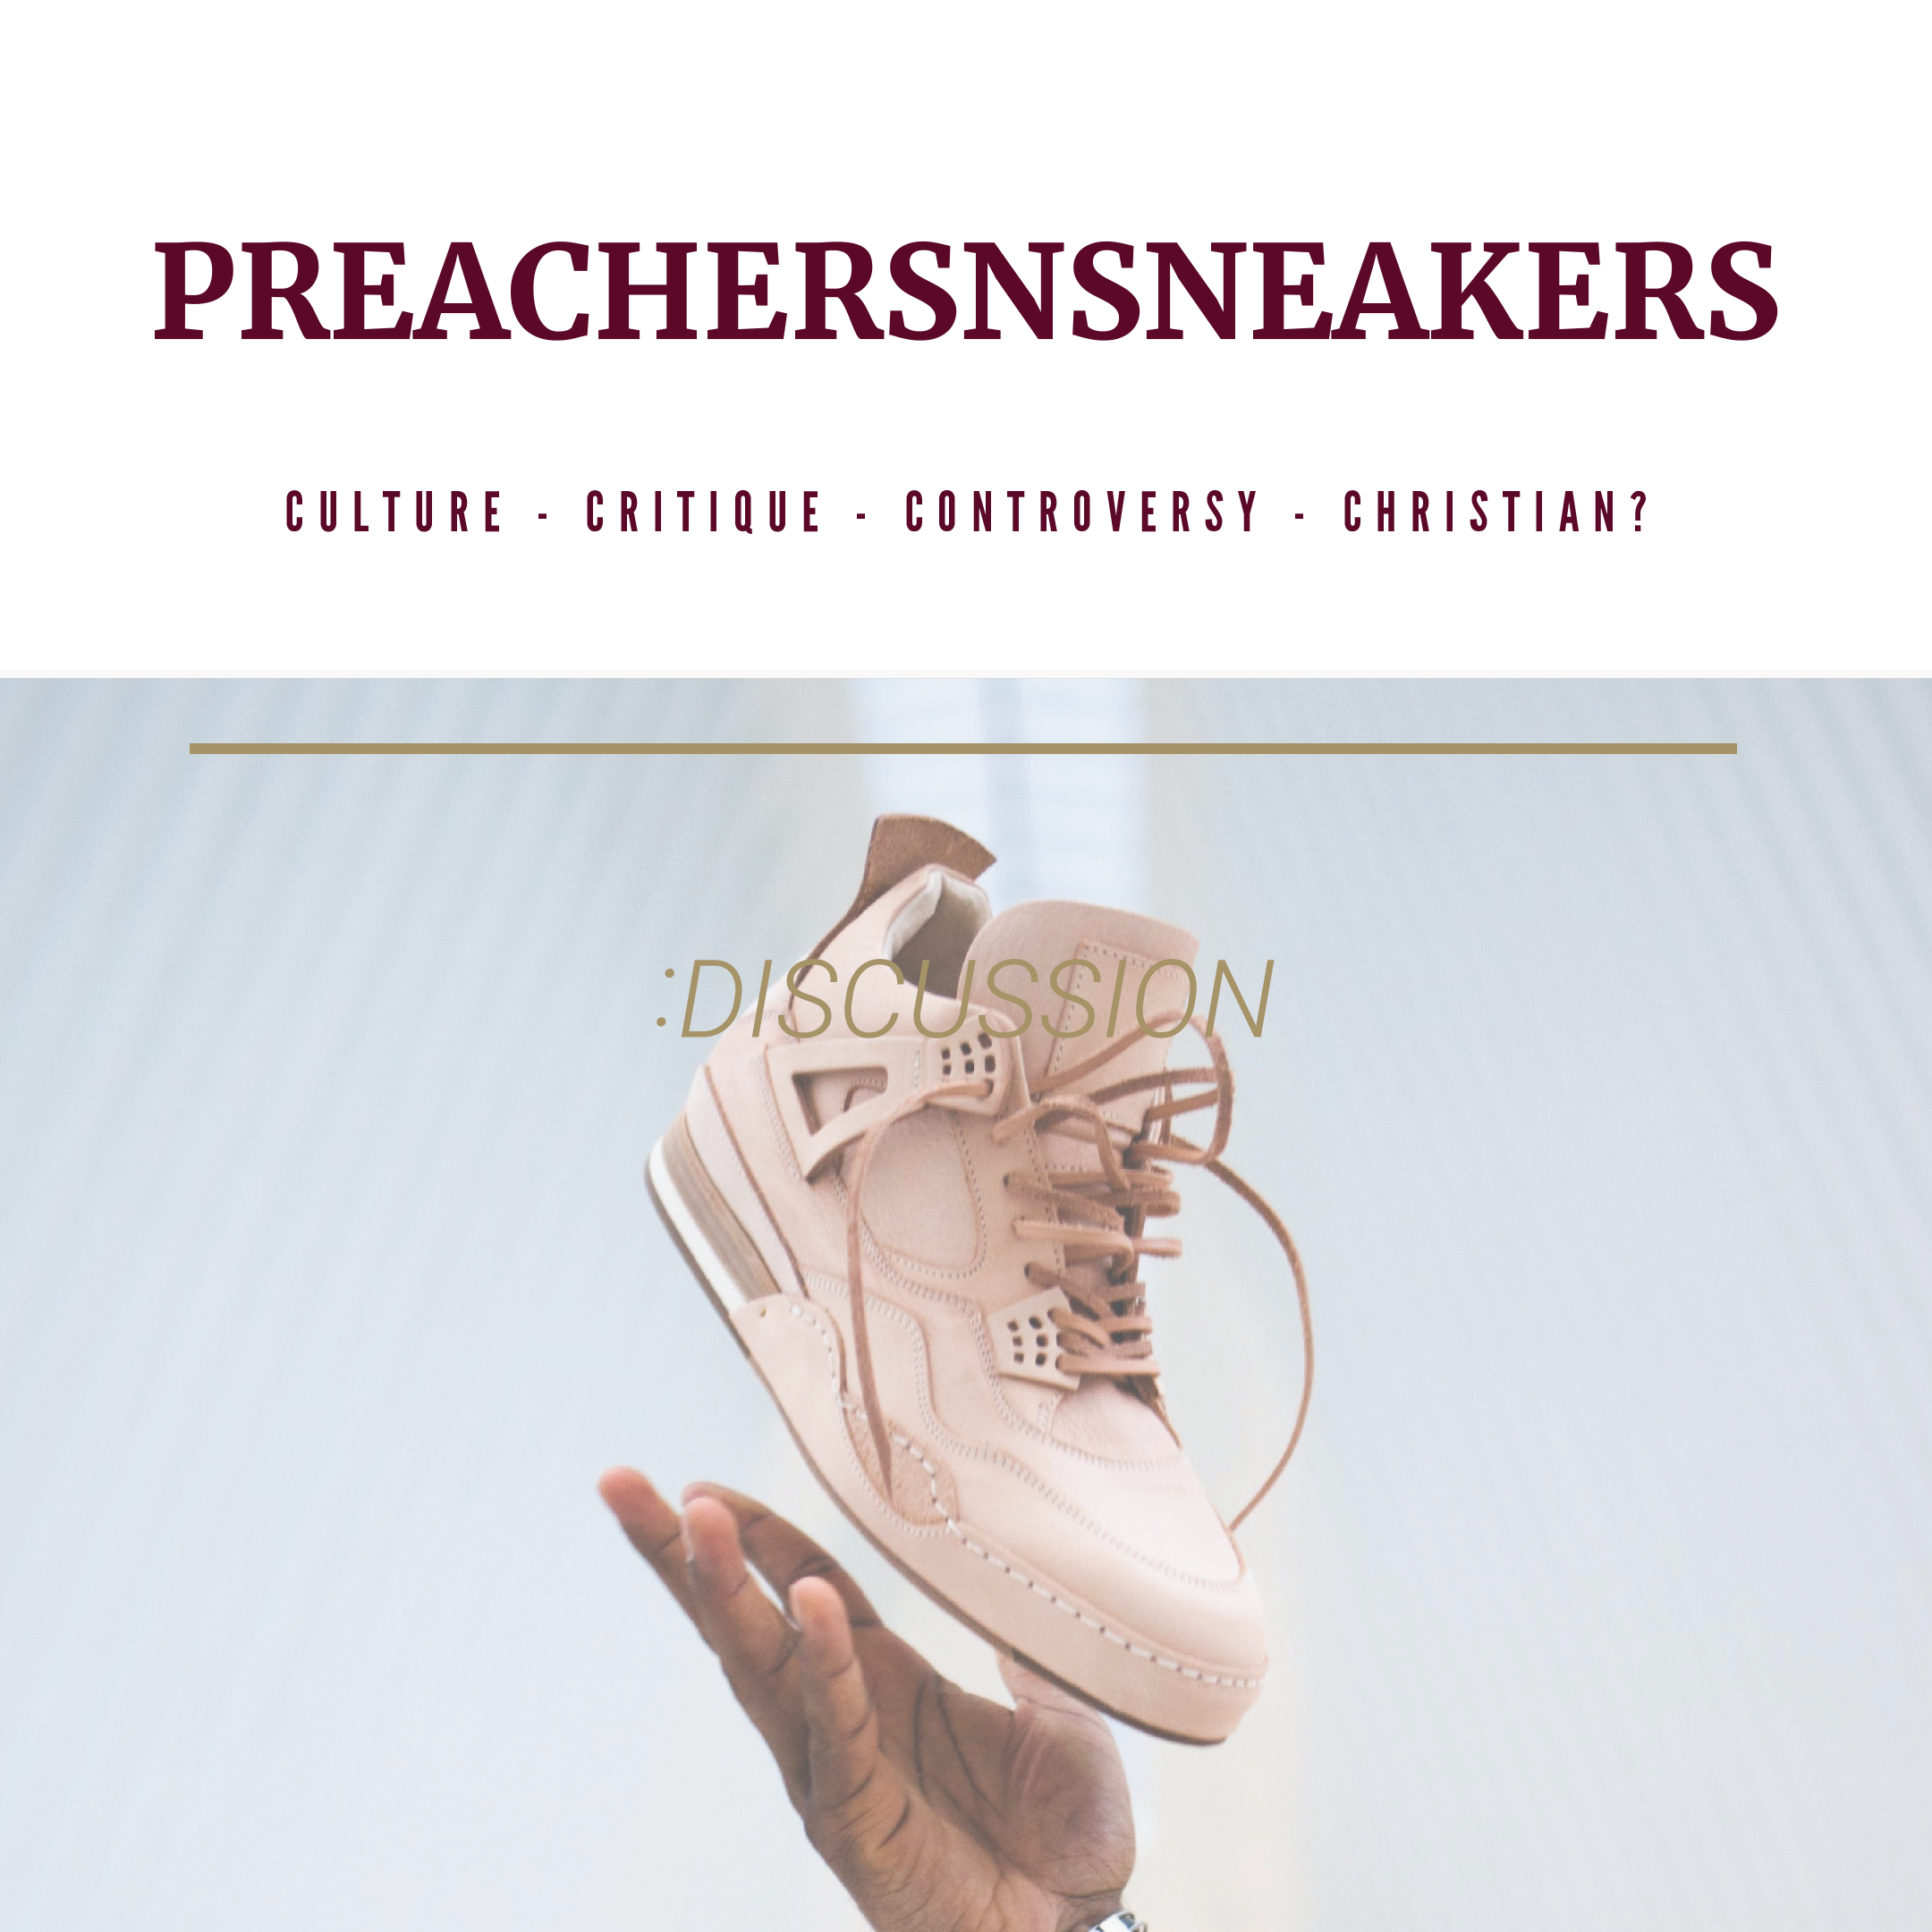 Preachersnsneakers Discussion.png